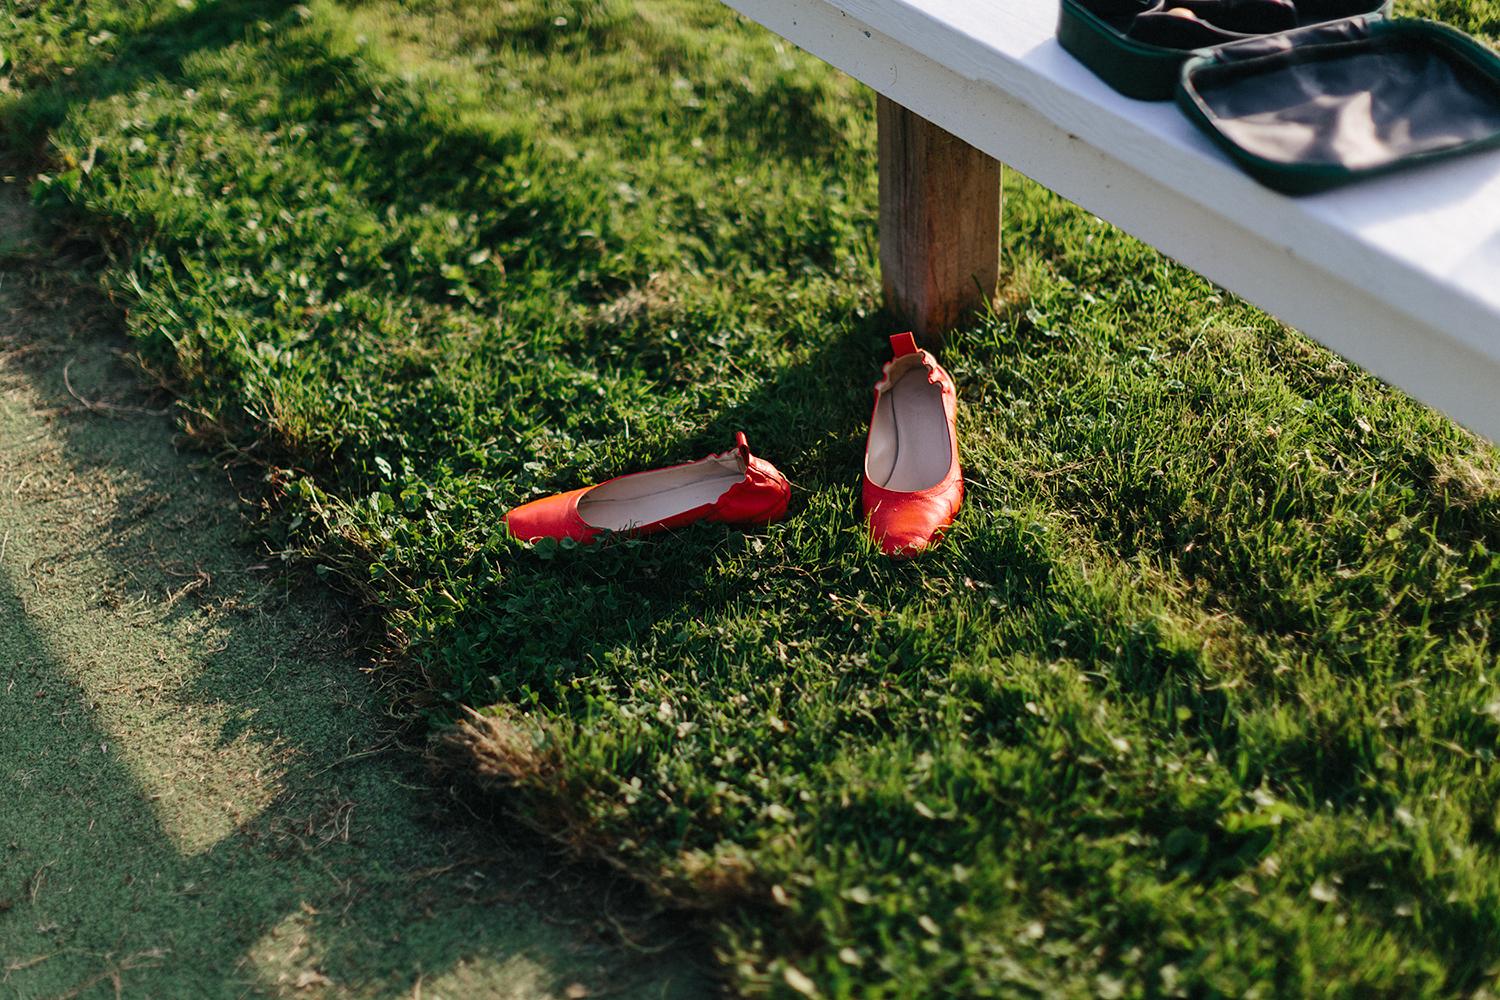 Best-Photographers-in-Toronto-Analog-Film-Toronto-Island-Wedding-Wards-Island-Clubhouse-Venue-small-intimate-hipster-alternative-vintage-inspired-wedding-cocktail-hour-lawn-bowling-games-guests-playing-shoes-off.jpg